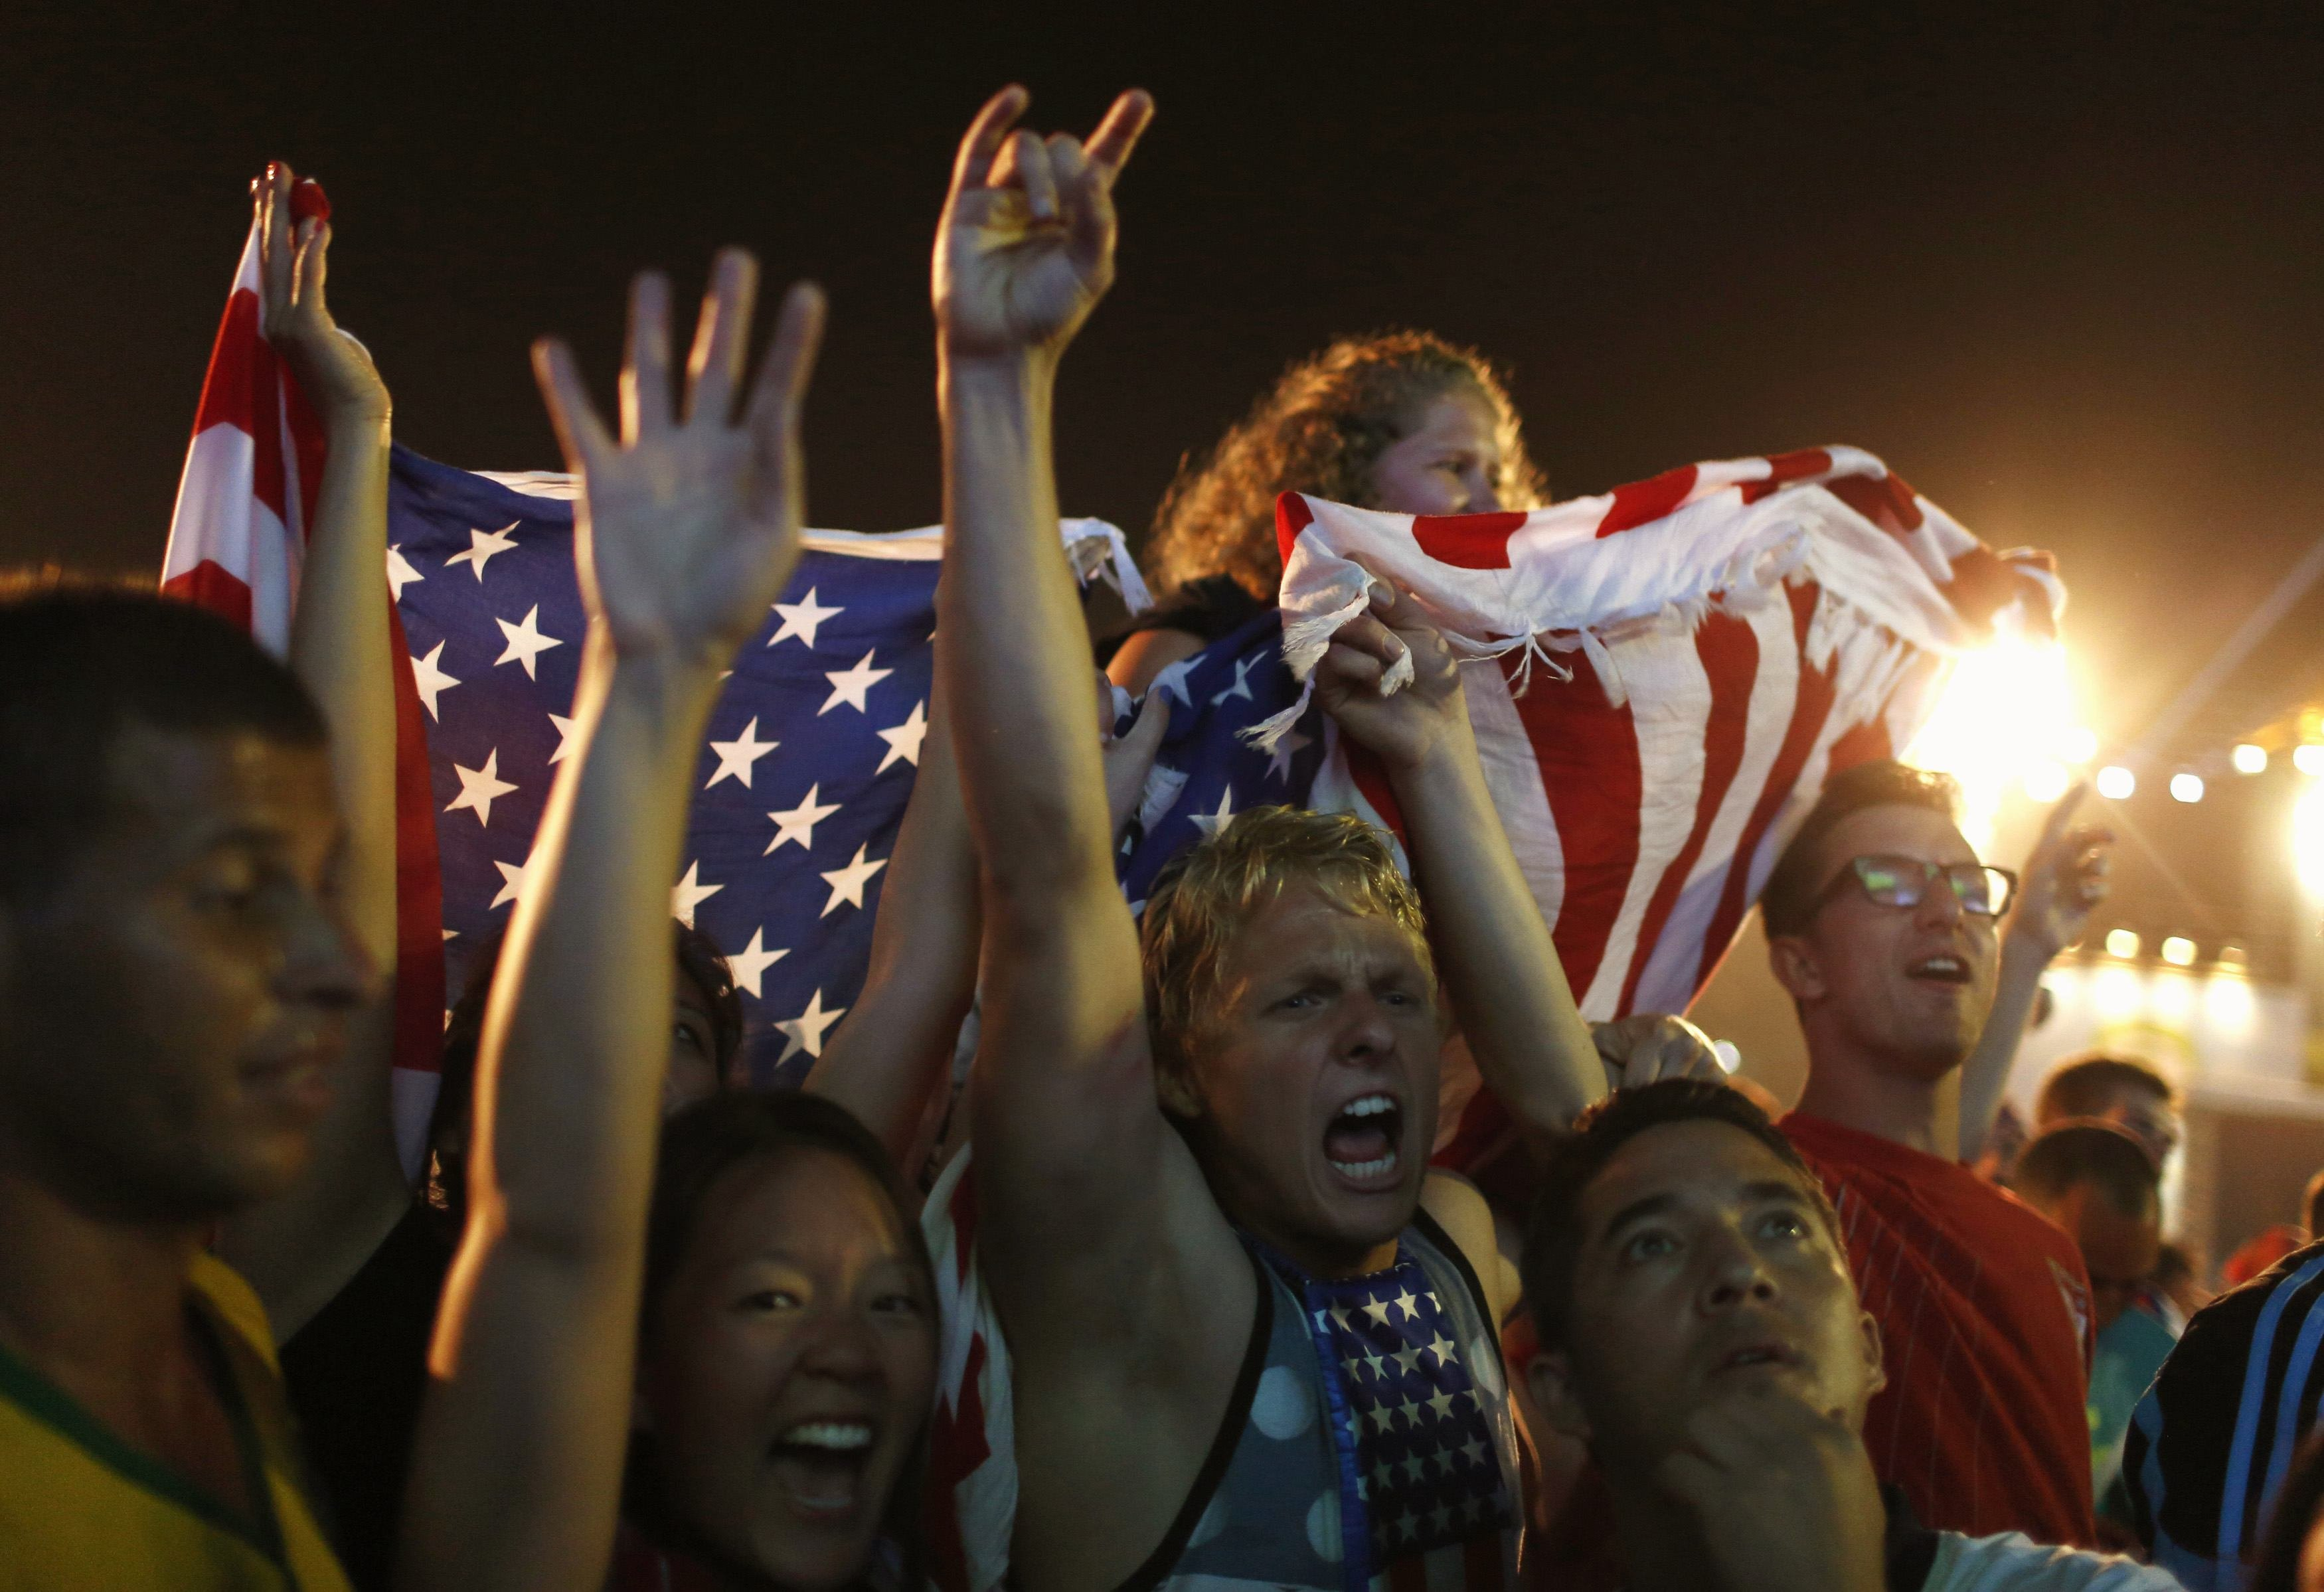 U.S. soccer fans celebrate at the end of the 2014 World Cup soccer match between U.S. and Ghana, in Rio de Janeiro on  June 16, 2014.